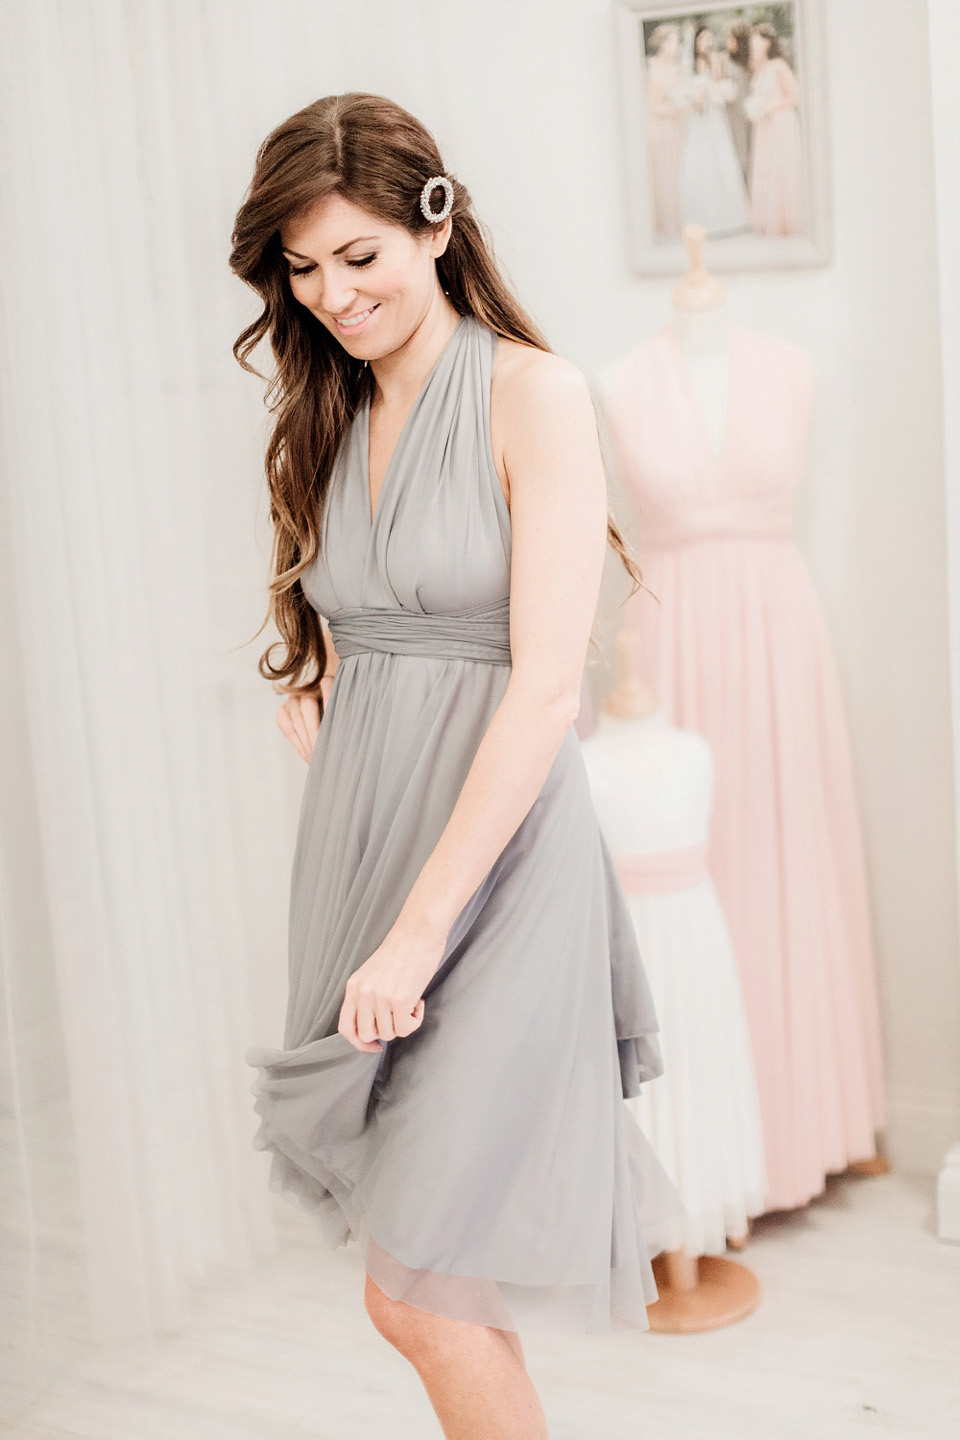 Twobirds Bridesmaids Launches New Tulle Collection for Spring 2015 (Bridal Fashion Fashion & Beauty Get Inspired Supplier Spotlight )